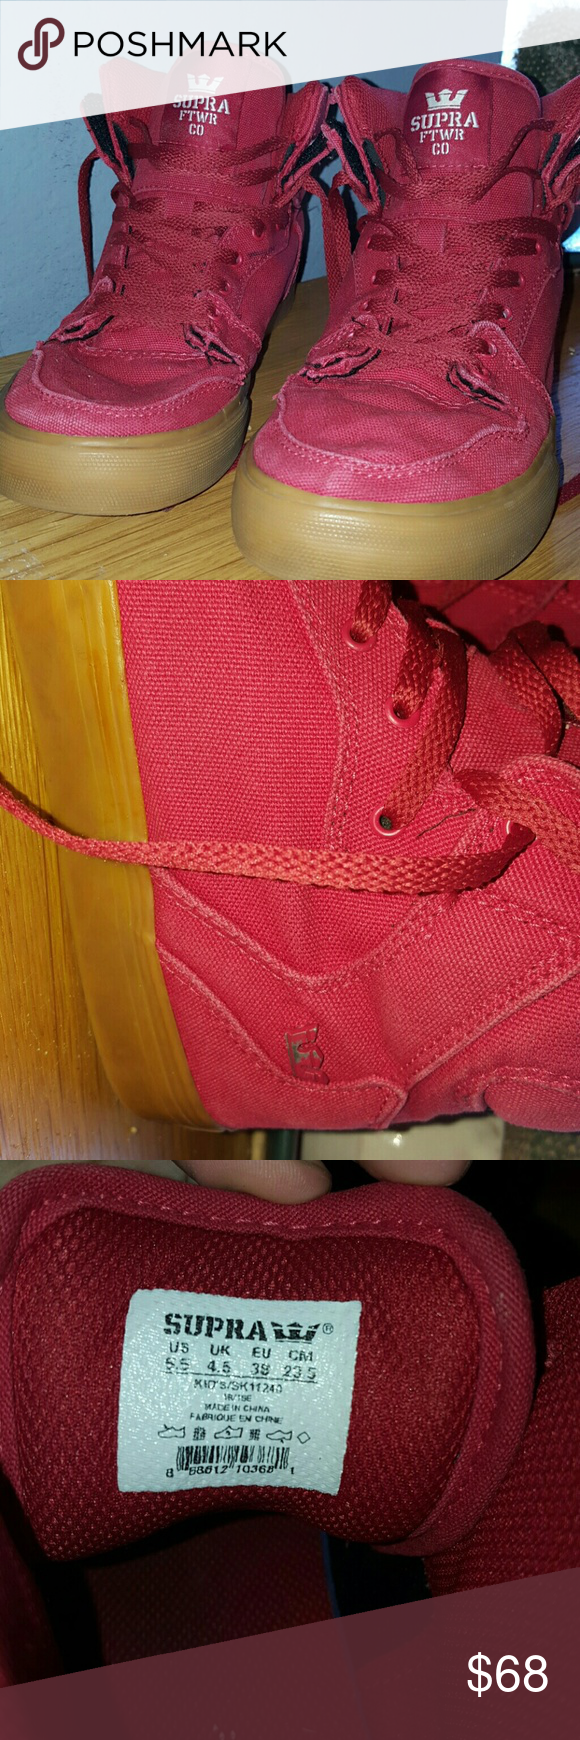 Red Supras No stains but does have a few scratches on the metal logo on the side of the shoe, but overall in a good condition. 5.5 in men. Please ask if more detailed pictures are needed. Supra Shoes Sneakers